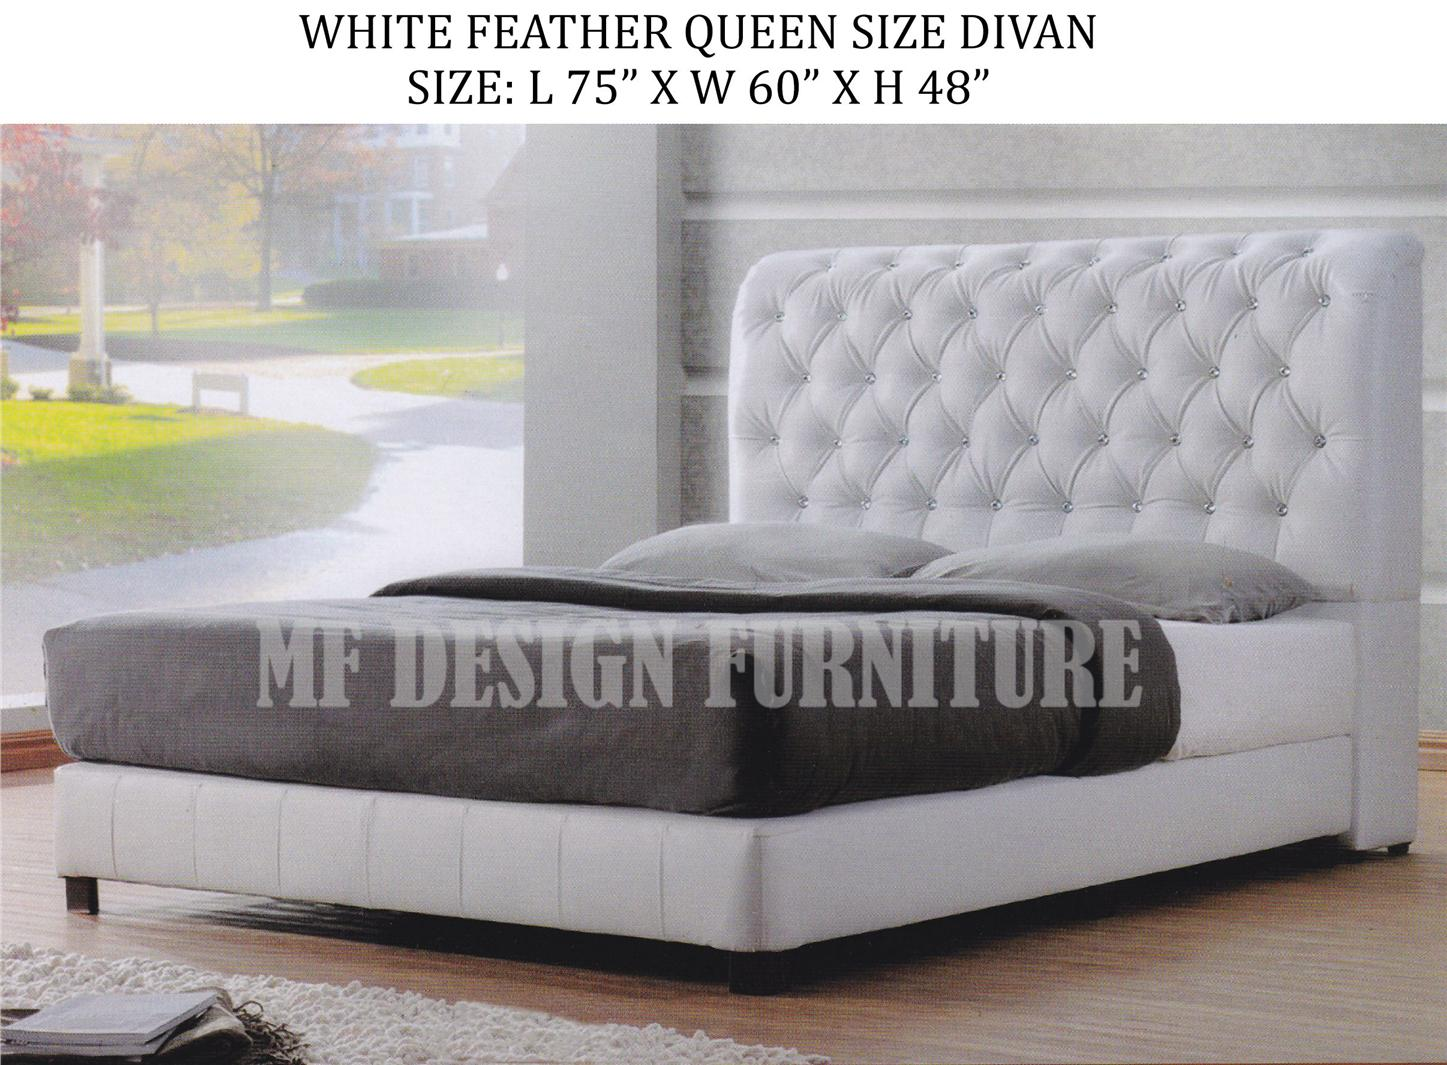 Mf design white feather queen end 4 12 2016 6 15 pm myt for Queen size divan